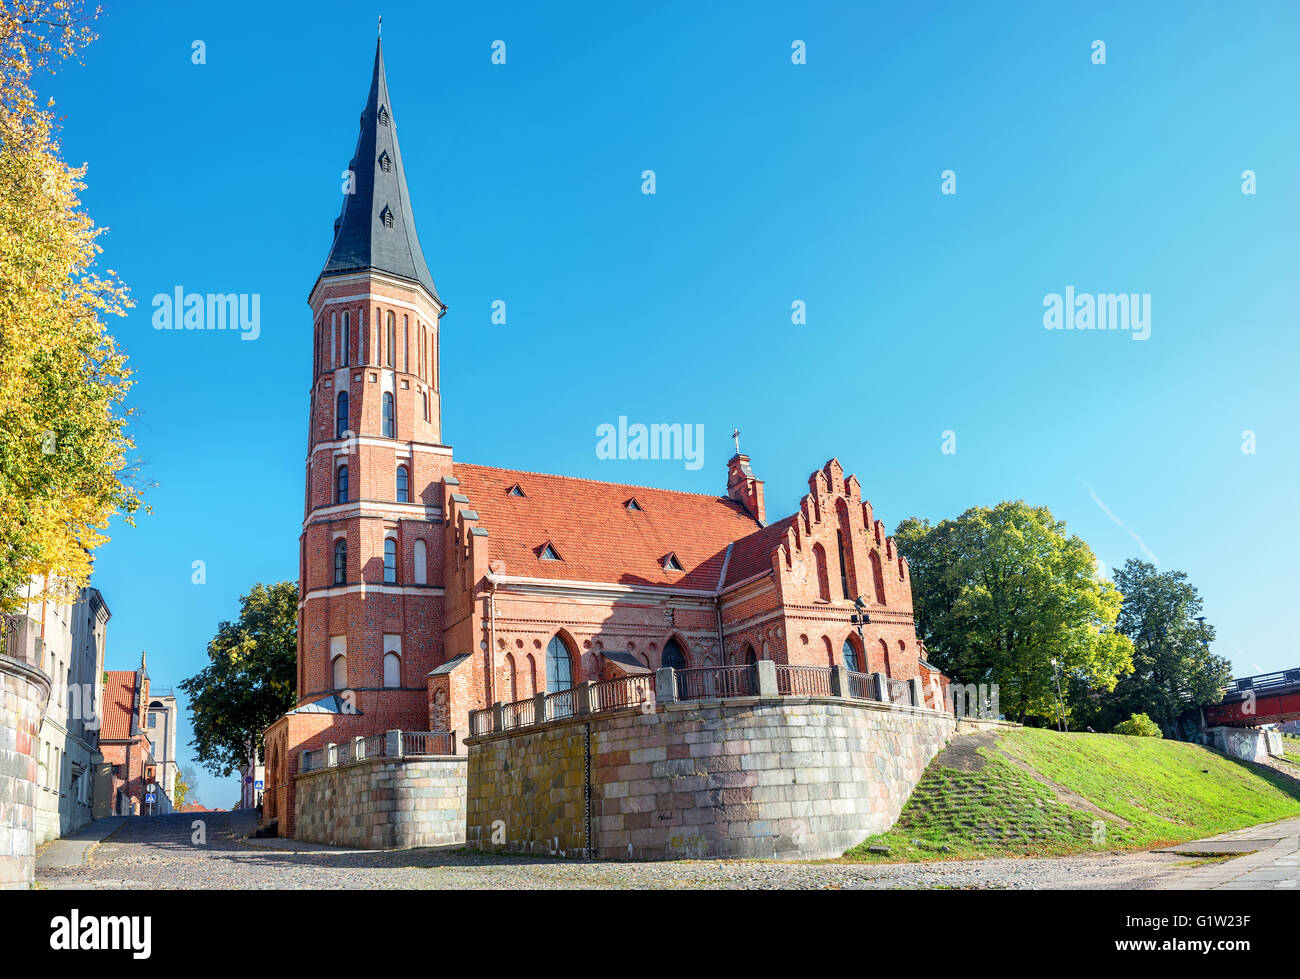 Vytautas Church, Kaunas, Lithuania - Stock Image